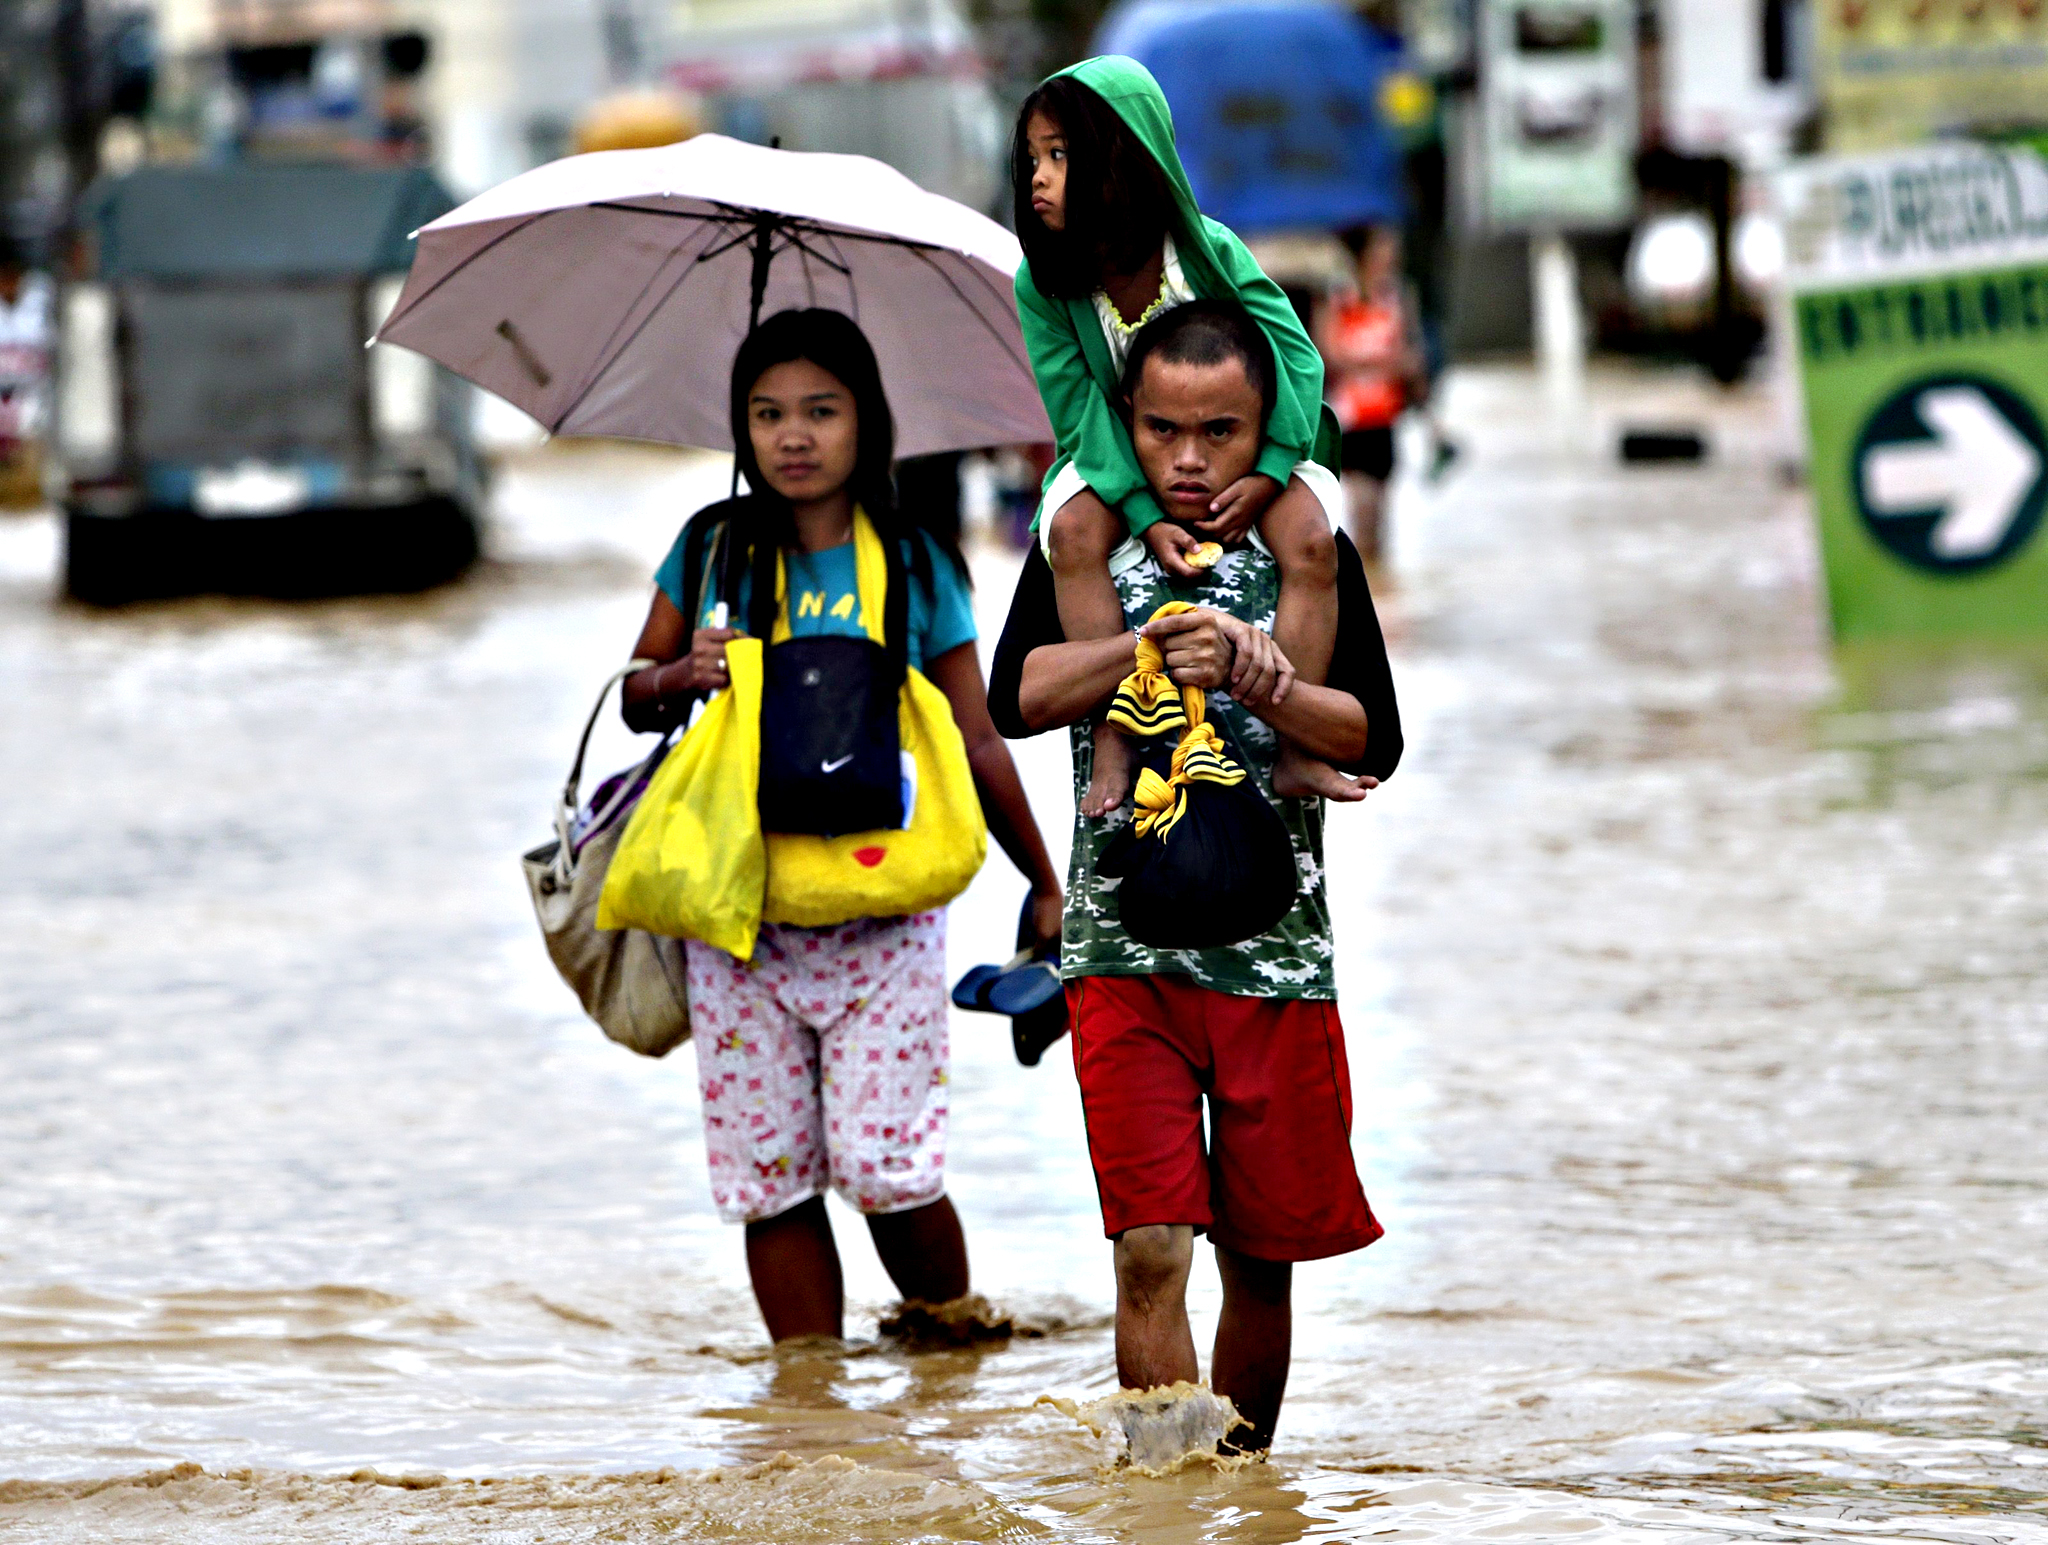 Filipino typhoon victims ride on a makeshift raft  at a flooded street in Cabanatuan city, northern Manila, Philippines, 19 October 2015. Typhoon Koppu triggered flash floods and landslides in the northern Philippines killing at least four people and forcing thousands of people to flee their homes, officials said. Two people drowned in the province of Nueva Ecija, according to Governor Aurelio Umali, while one person was electrocuted in Tarlac province and a 14-year-old boy was hit by a falling tree in Manila, disaster relief officials said. The Philippines is hit by an average of 20 cyclones every year, causing floods, landslides and other accidents. The strongest typhoon - Haiyan - hit the country in November 2013, killing more than 6,300 people. Haiyan also displaced more than four million people after it wiped out entire villages in the central Philippines